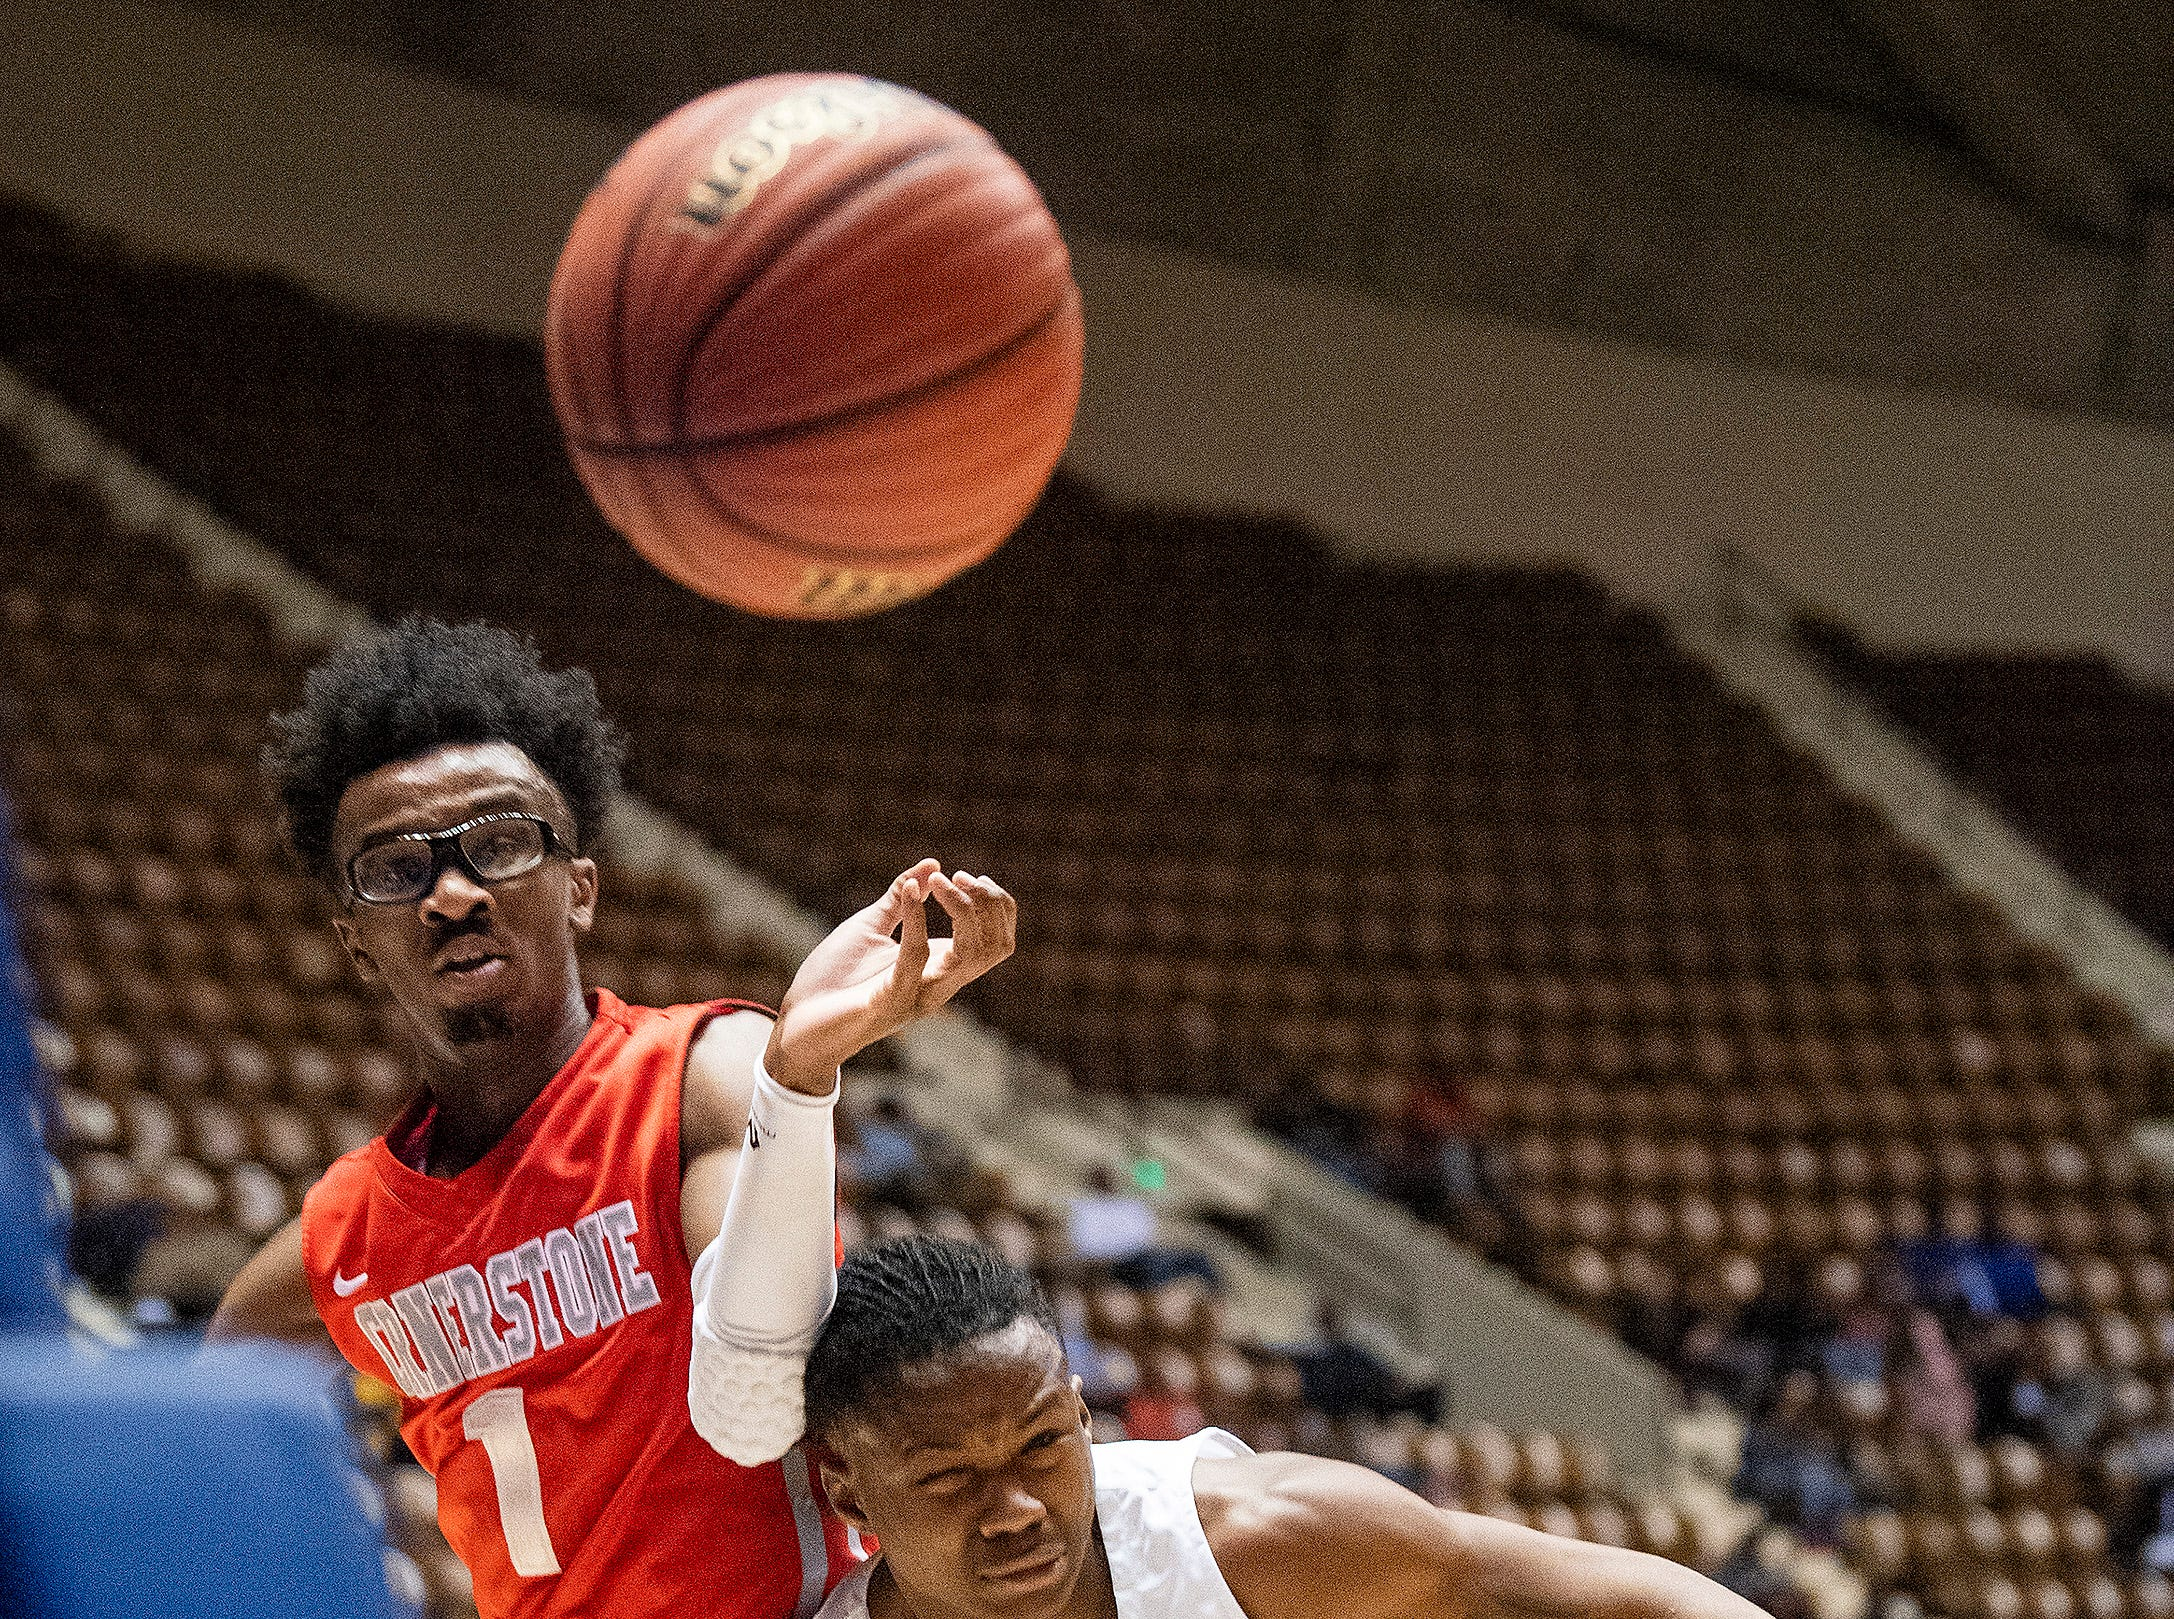 Cornerstone's Trey Johnson and Georgiana's Christopher Mixon chase a loose ball in AHSAA Regional action at Garrett Coliseum in Montgomery, Ala., on Monday February 18, 2019.